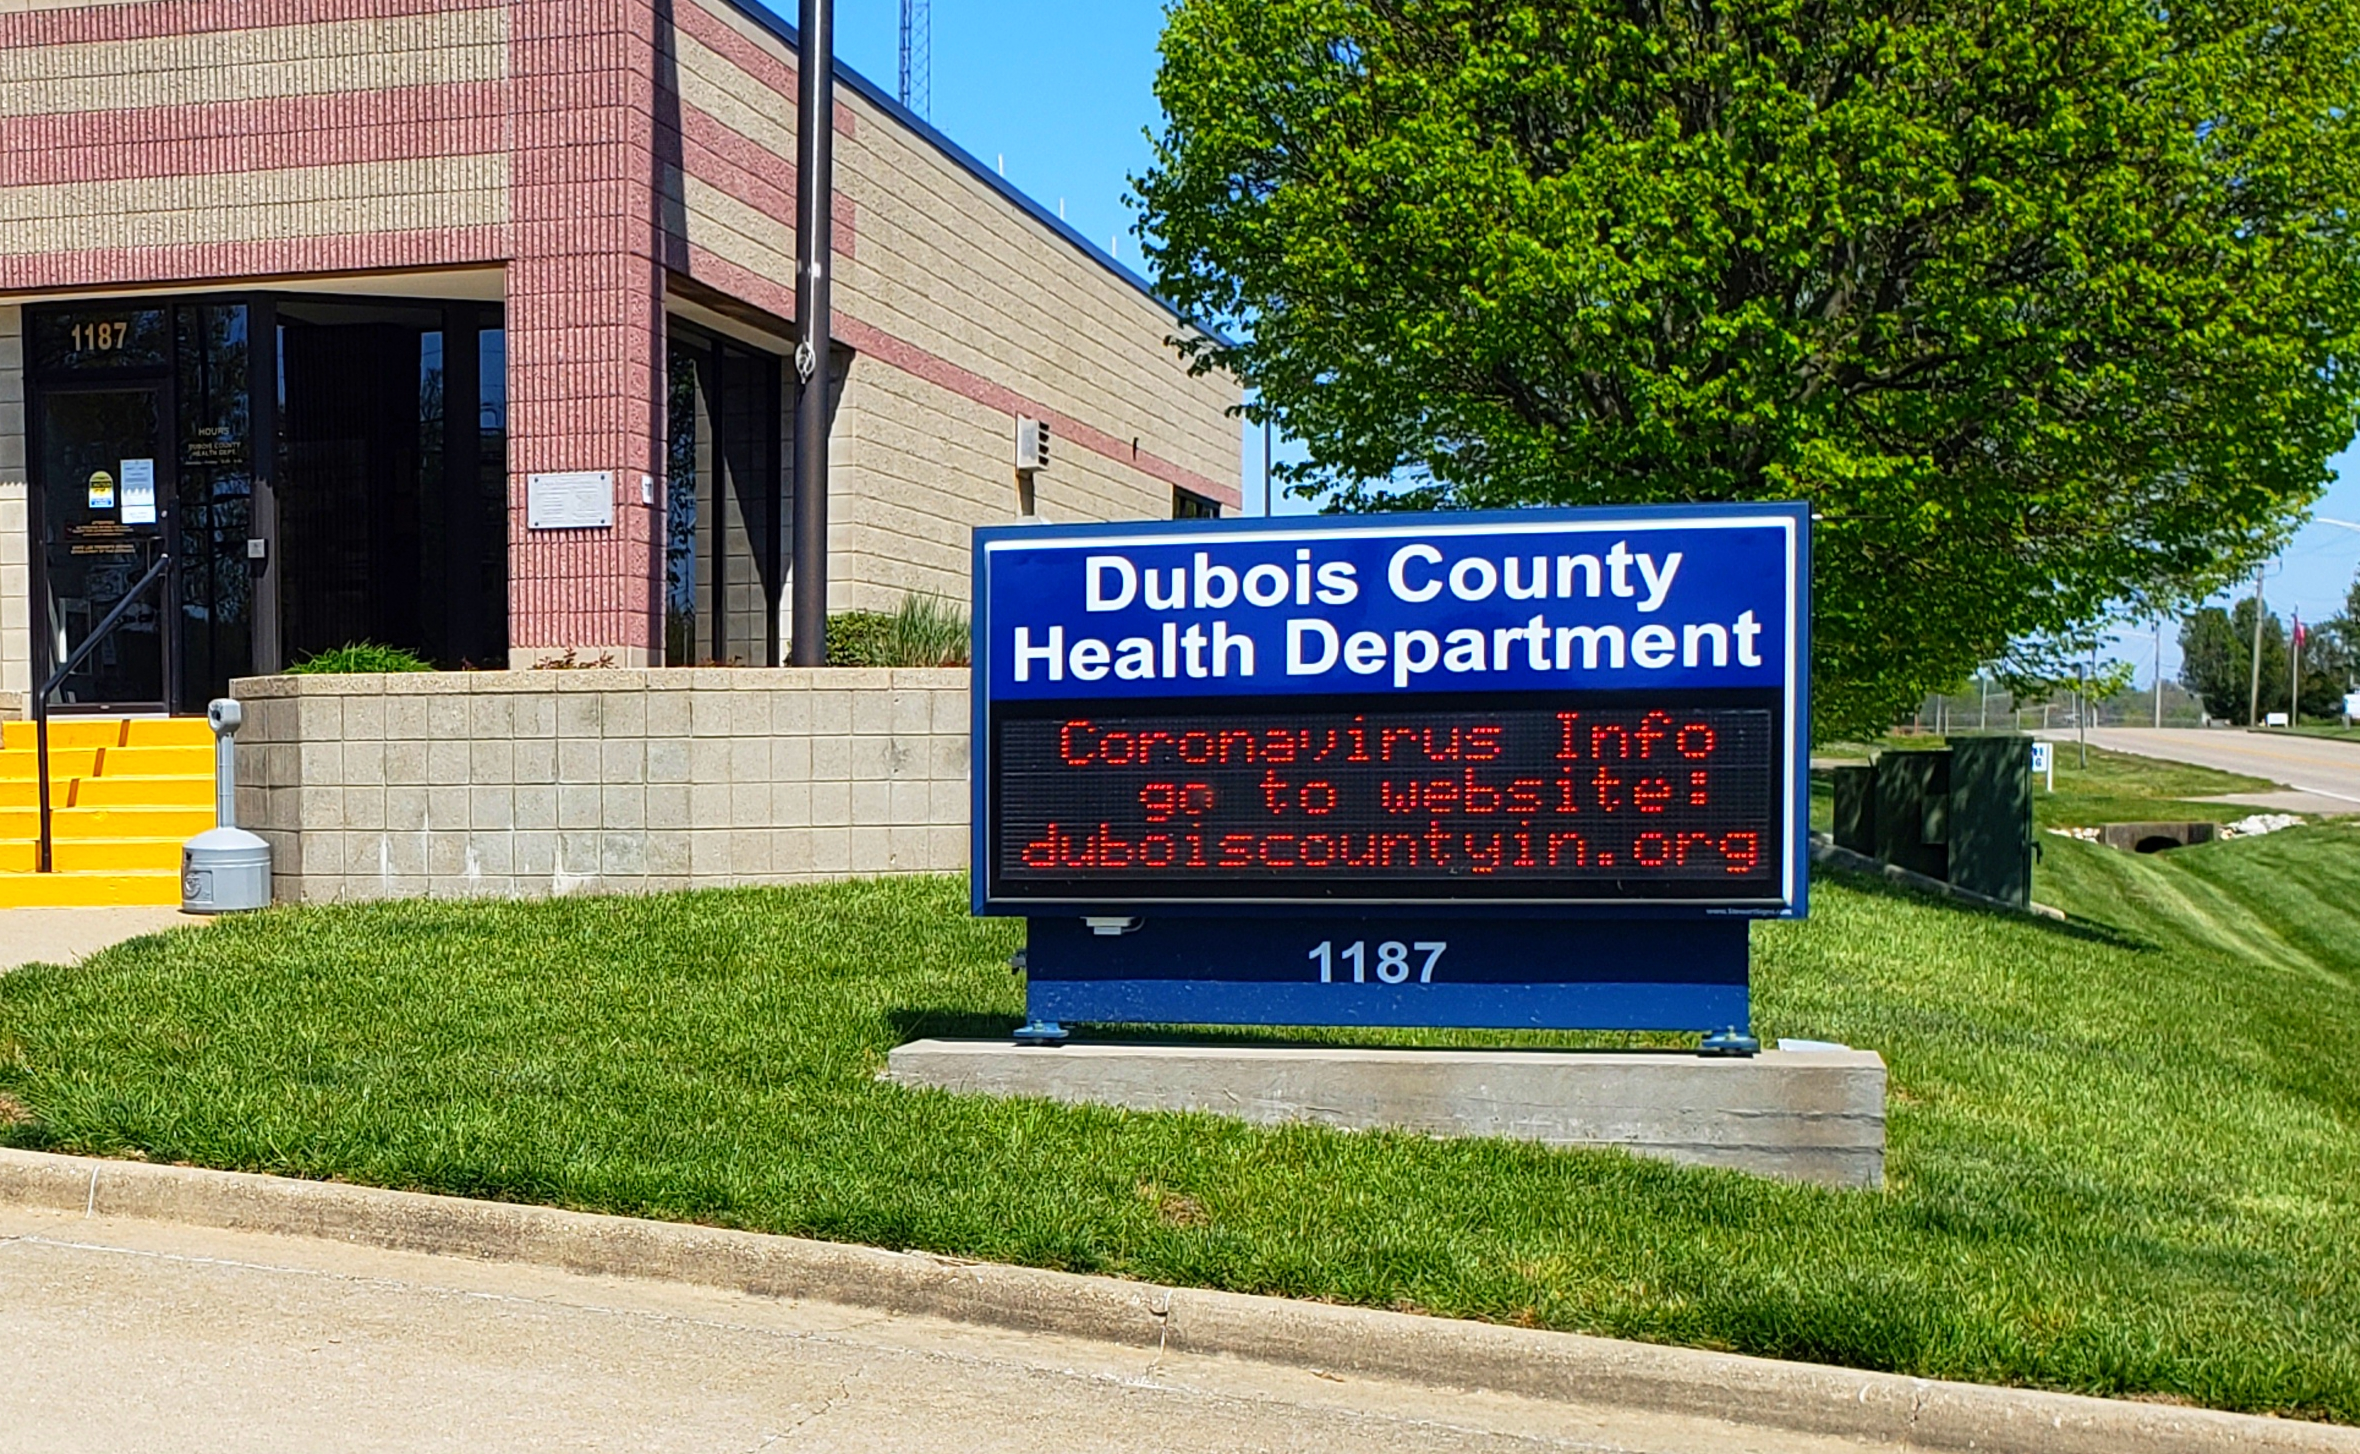 Dubois County Health Officials Change How Often They Report COVID-19 Cases